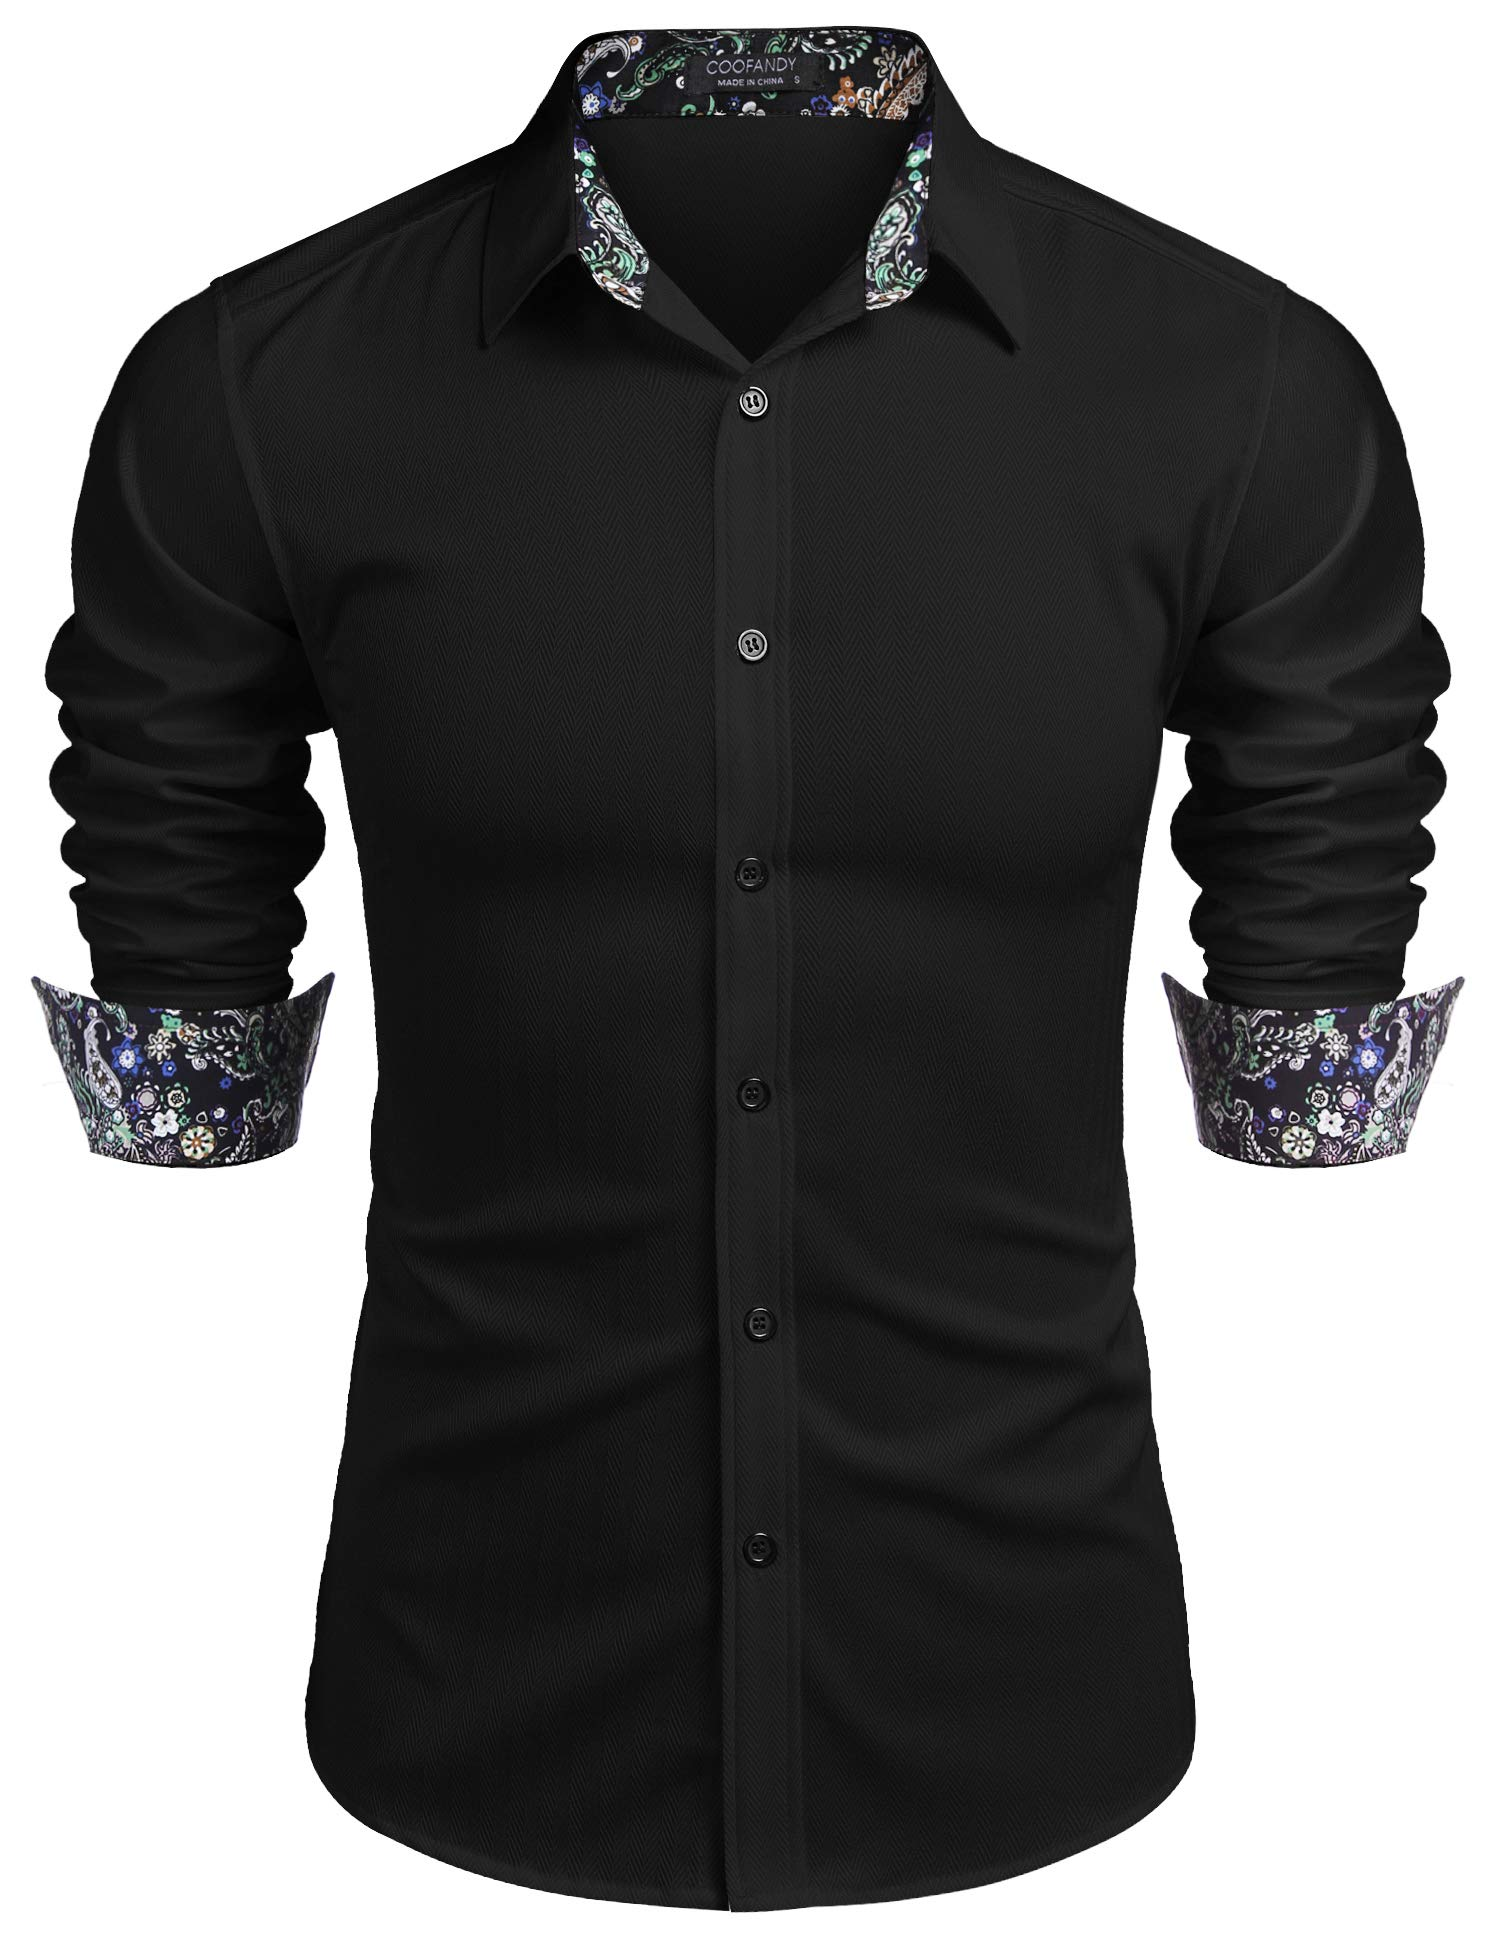 COOFANDY Men's Muscle Fit Untucked Shirts Wrinkle Free Dress Shirt Long Sleeve Casual Button Down Shirt